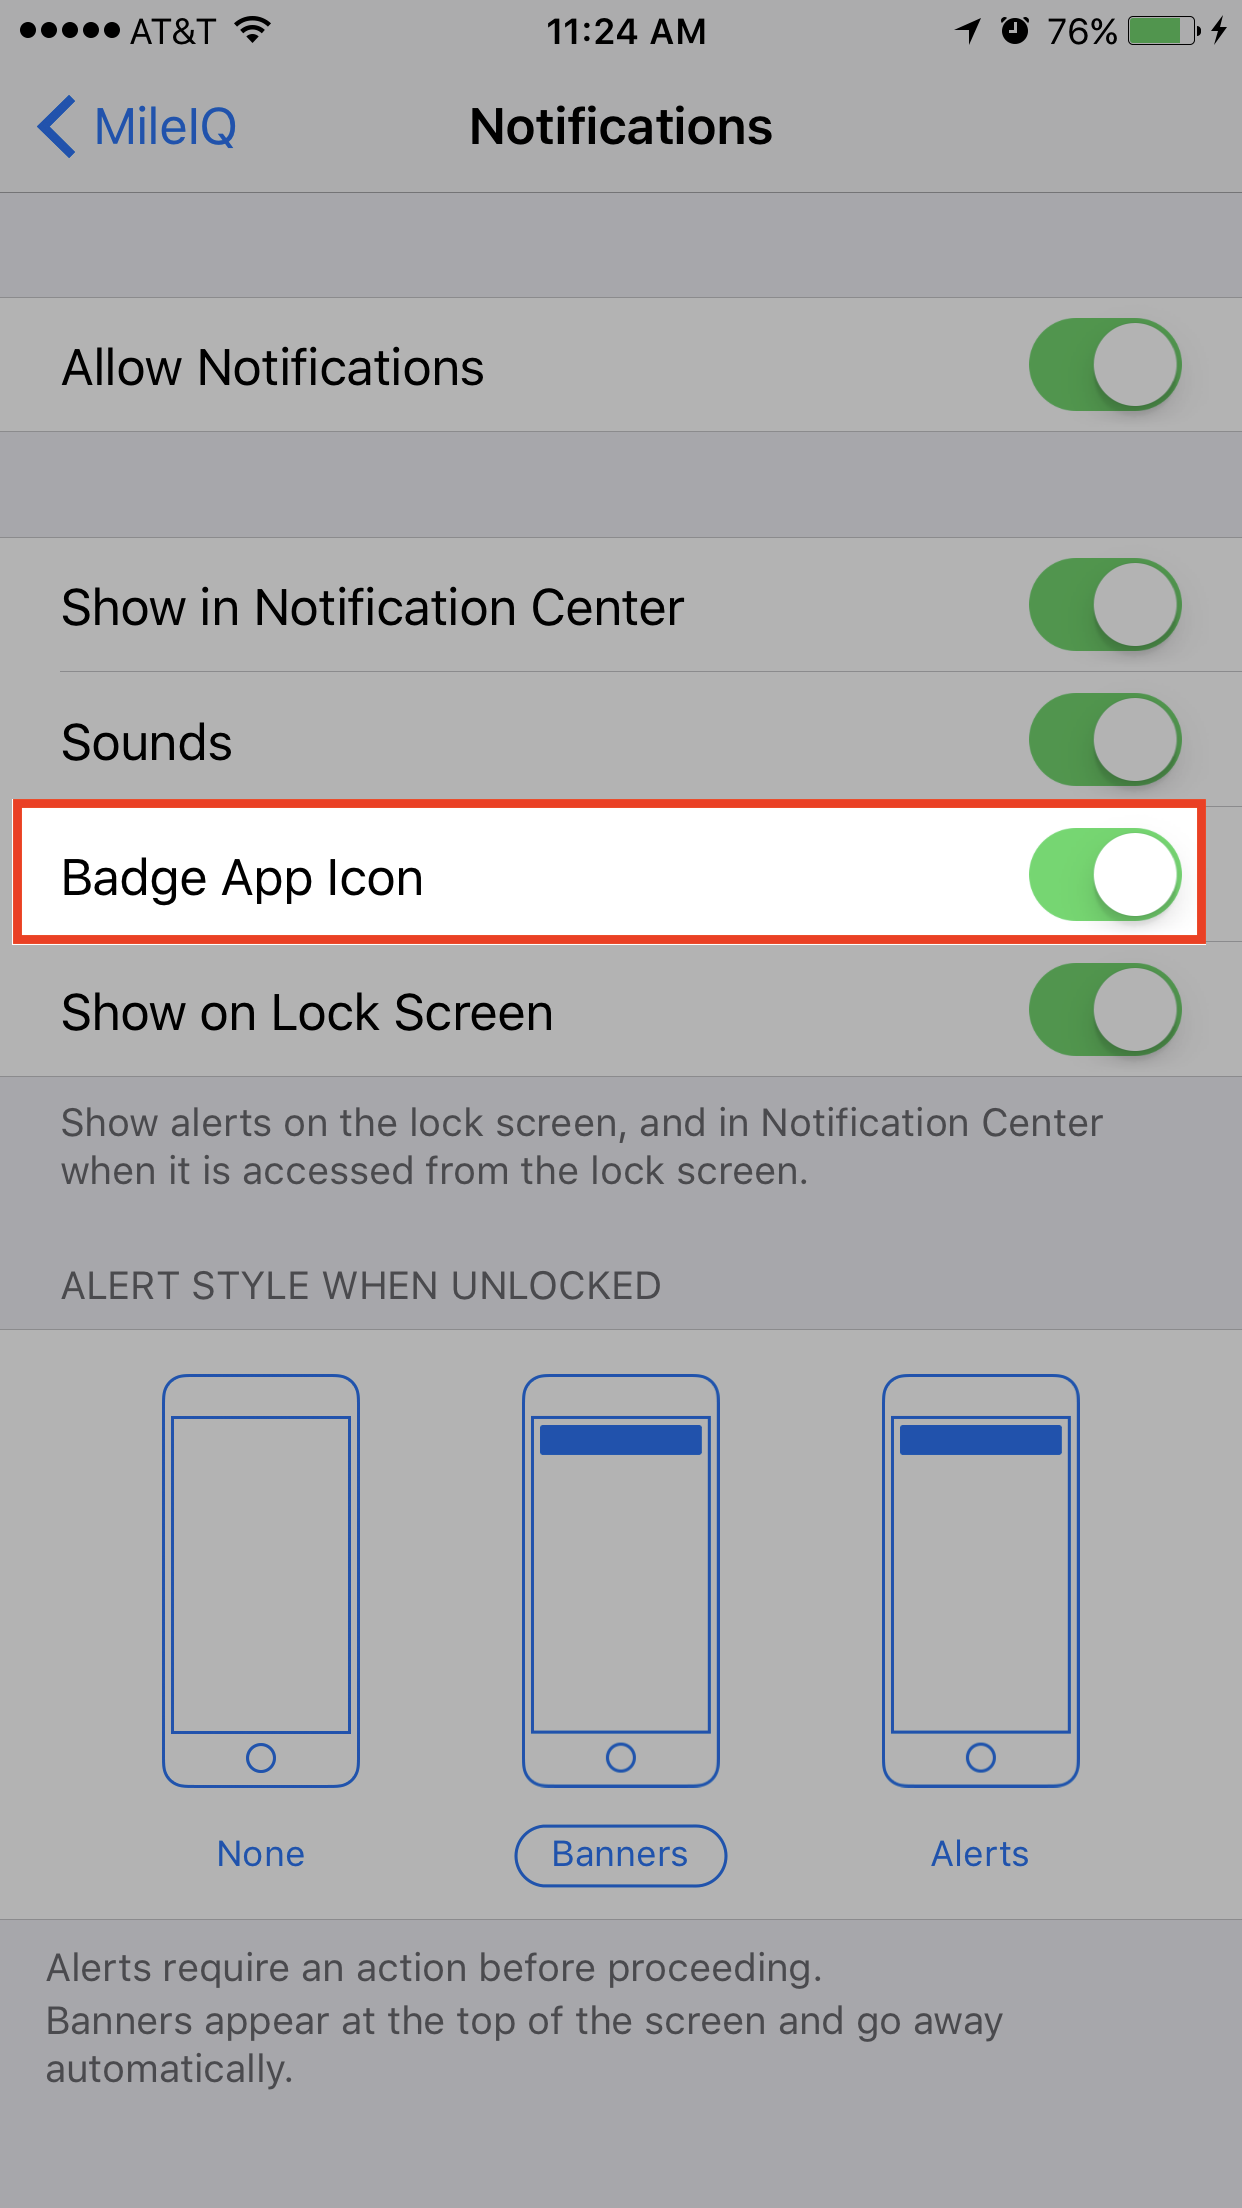 This image shows the Notifications page, highlighting the Badge App Icon toggle.